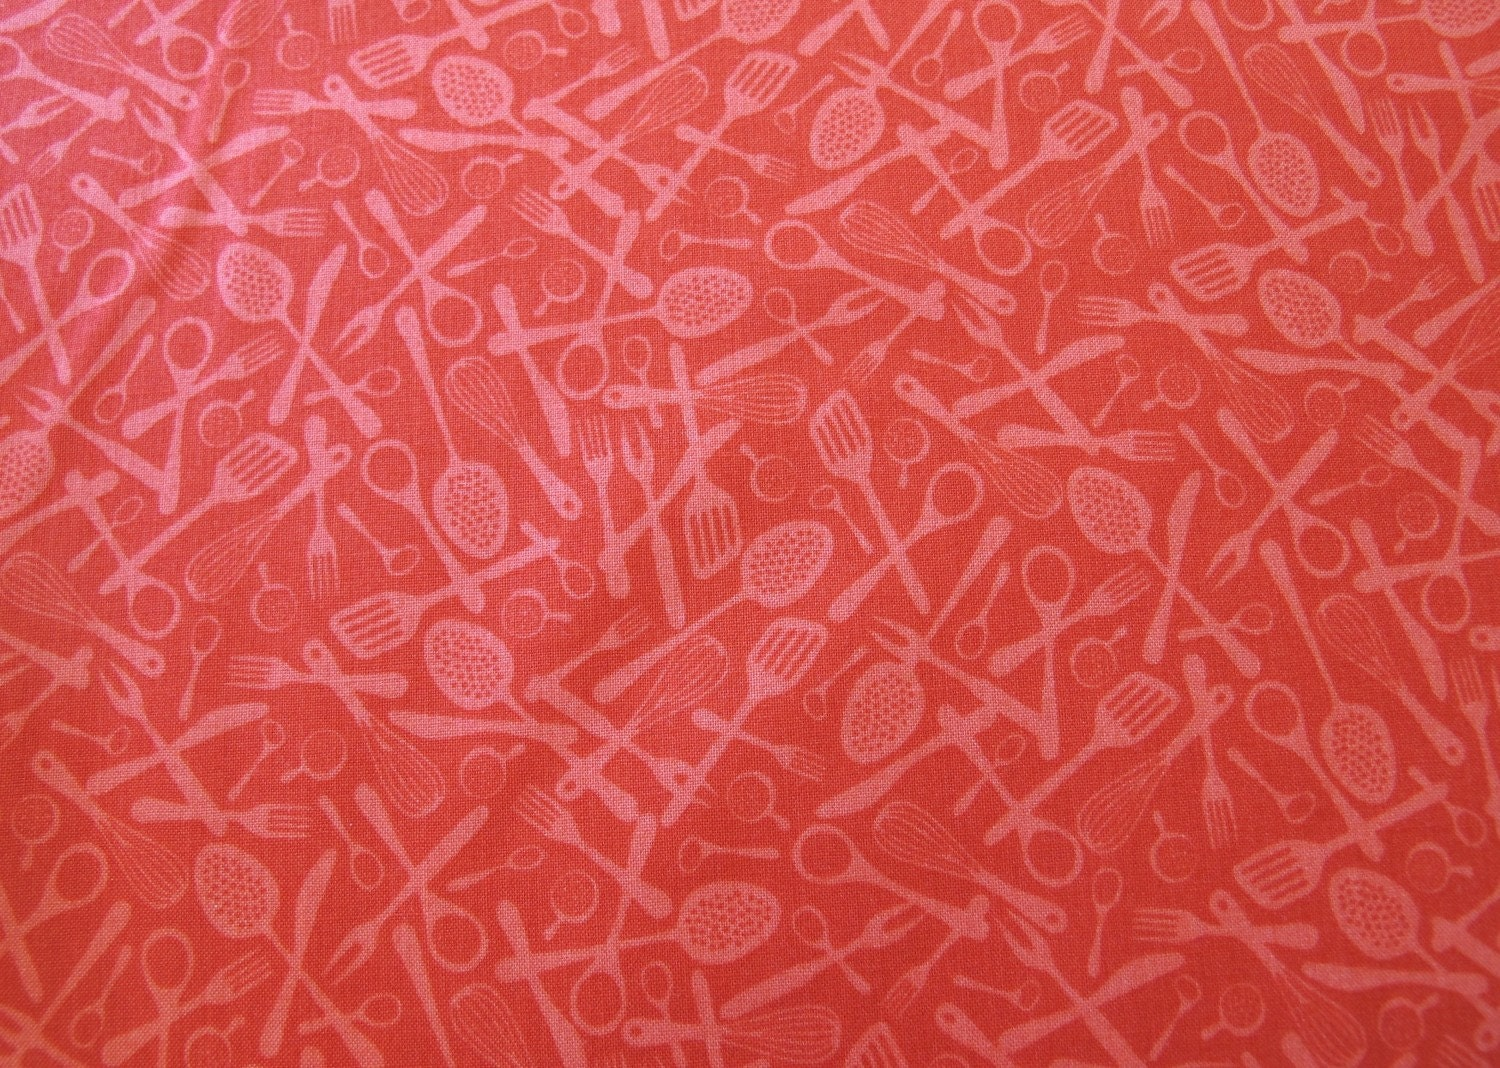 Kitchen Utensils Background last 3/4 yard modern kitchen red utensils 5.25 dollars